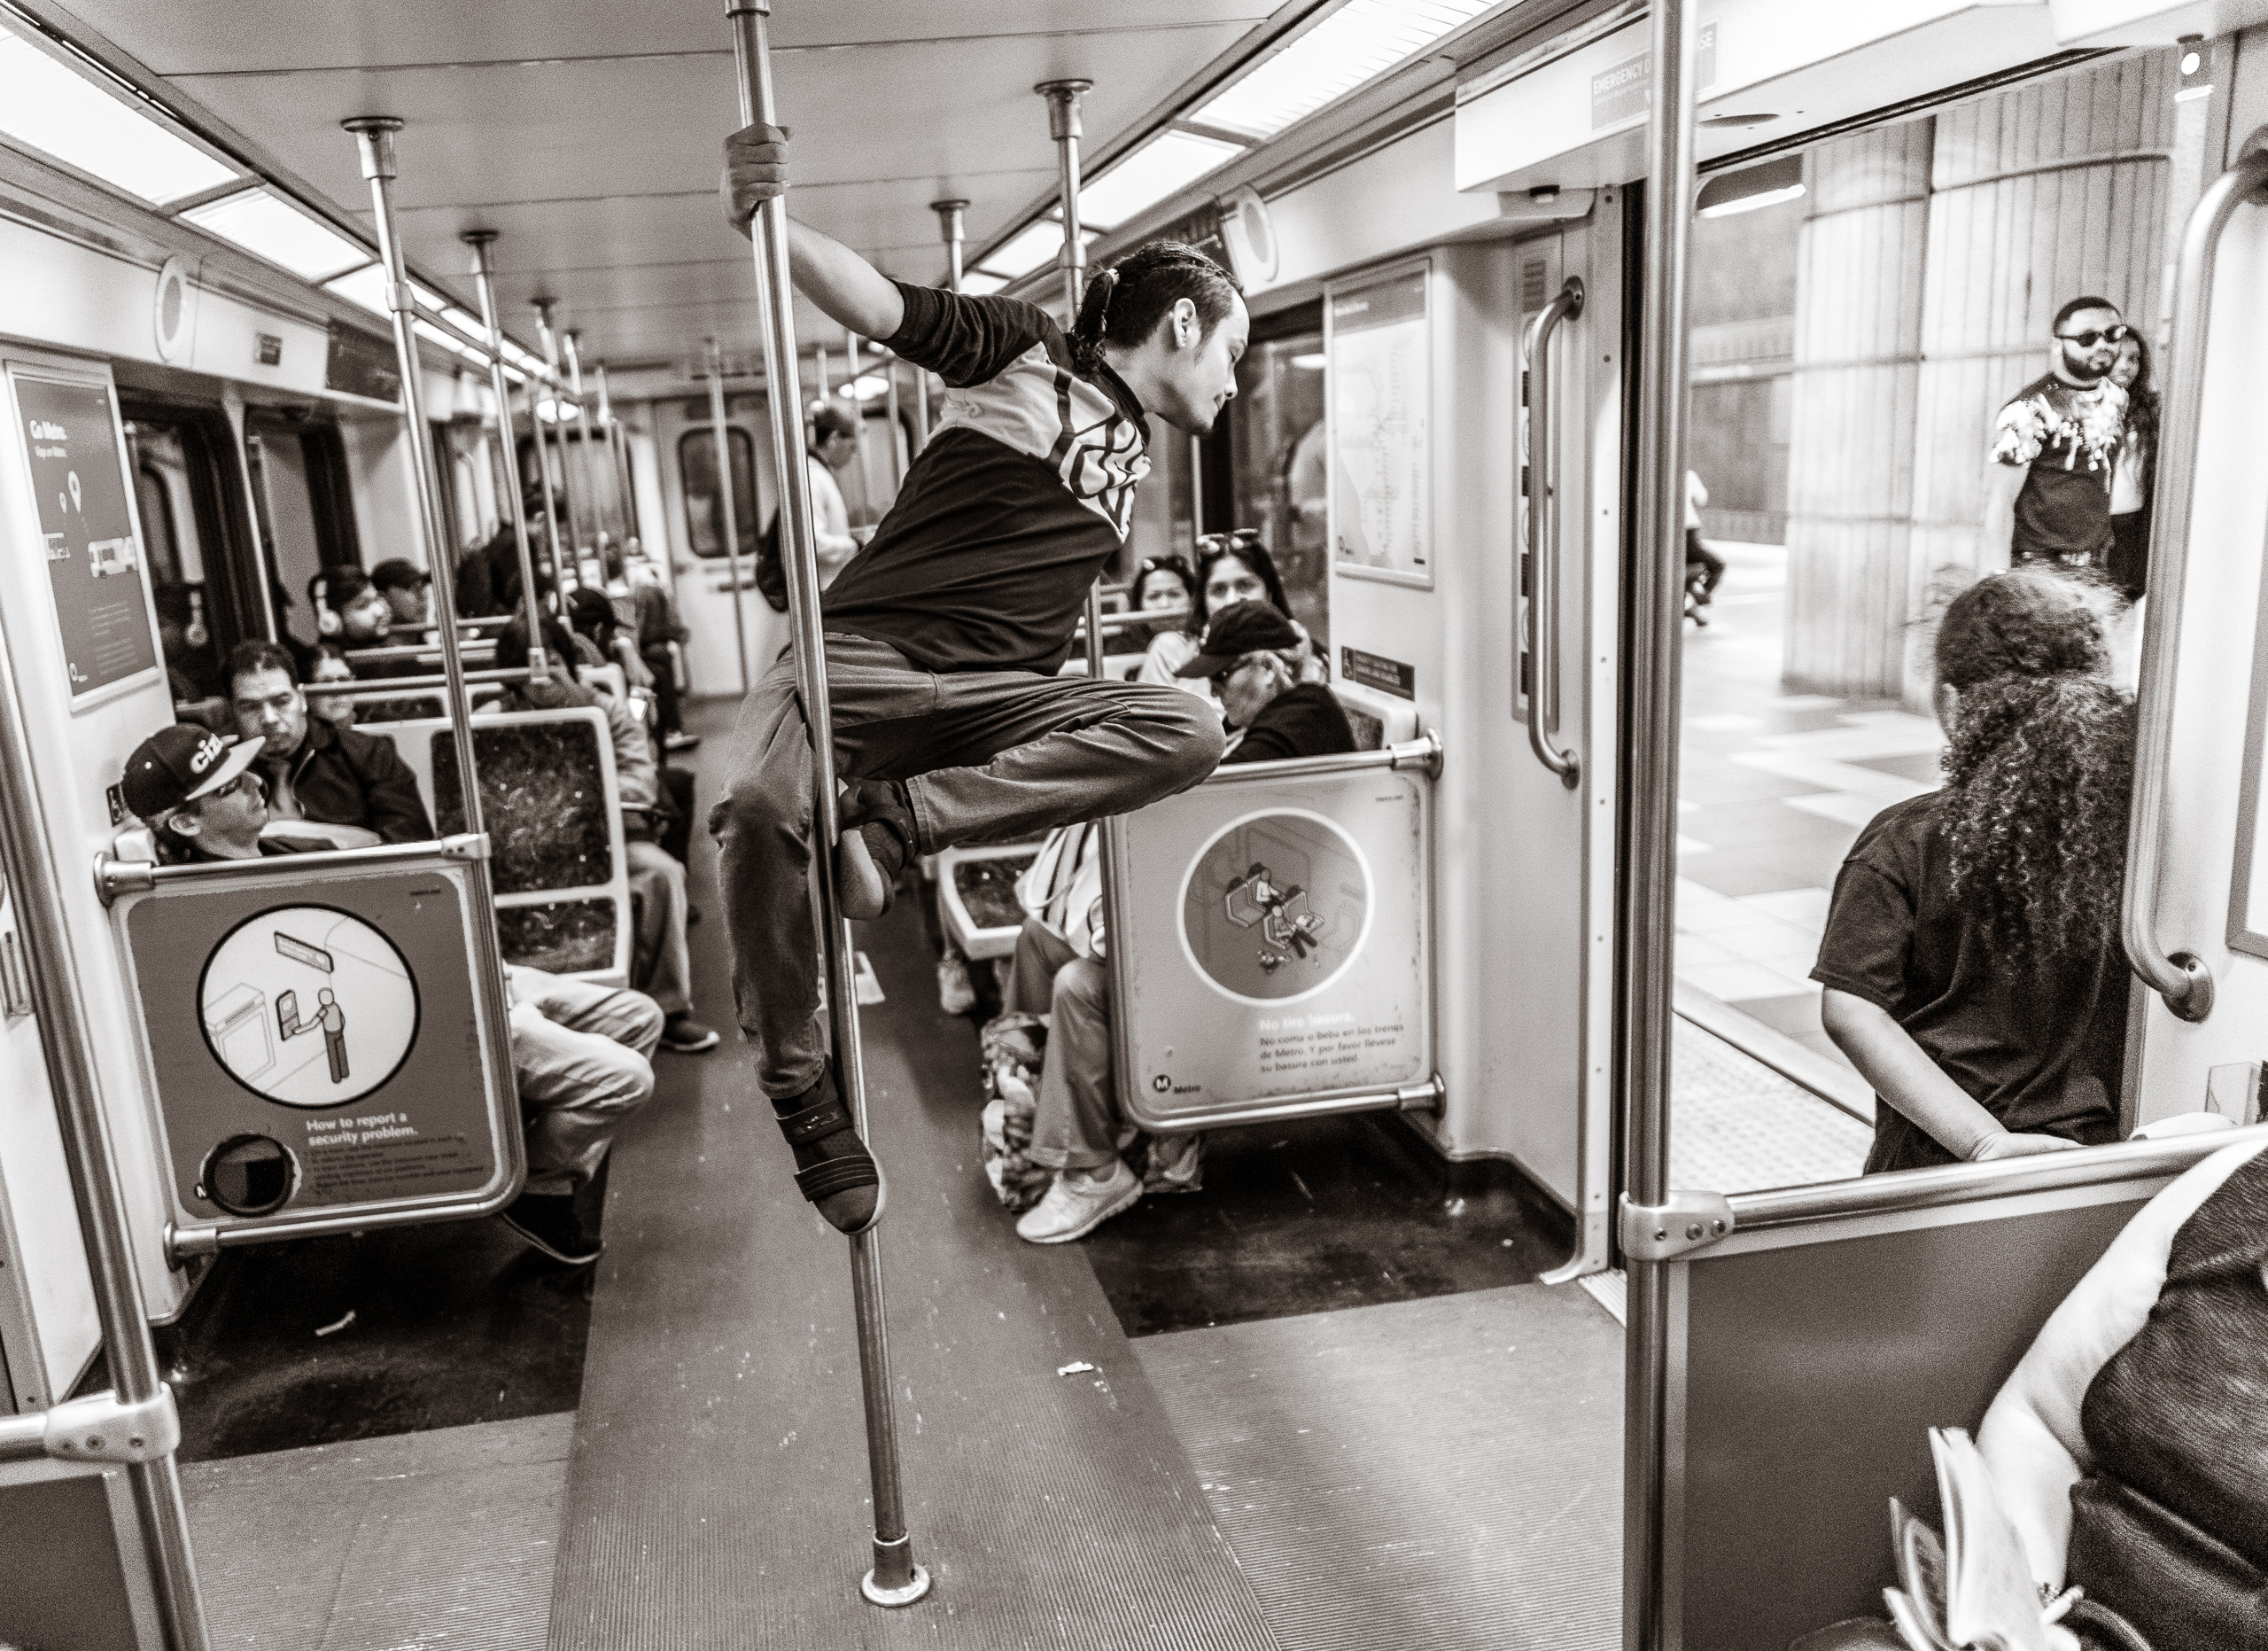 a guy does an impromptu dance performance using one of the vertical hand-hold poles on a Los Angeles Metro Red Line train car headed for North Hollywood on a Saturday afternoon